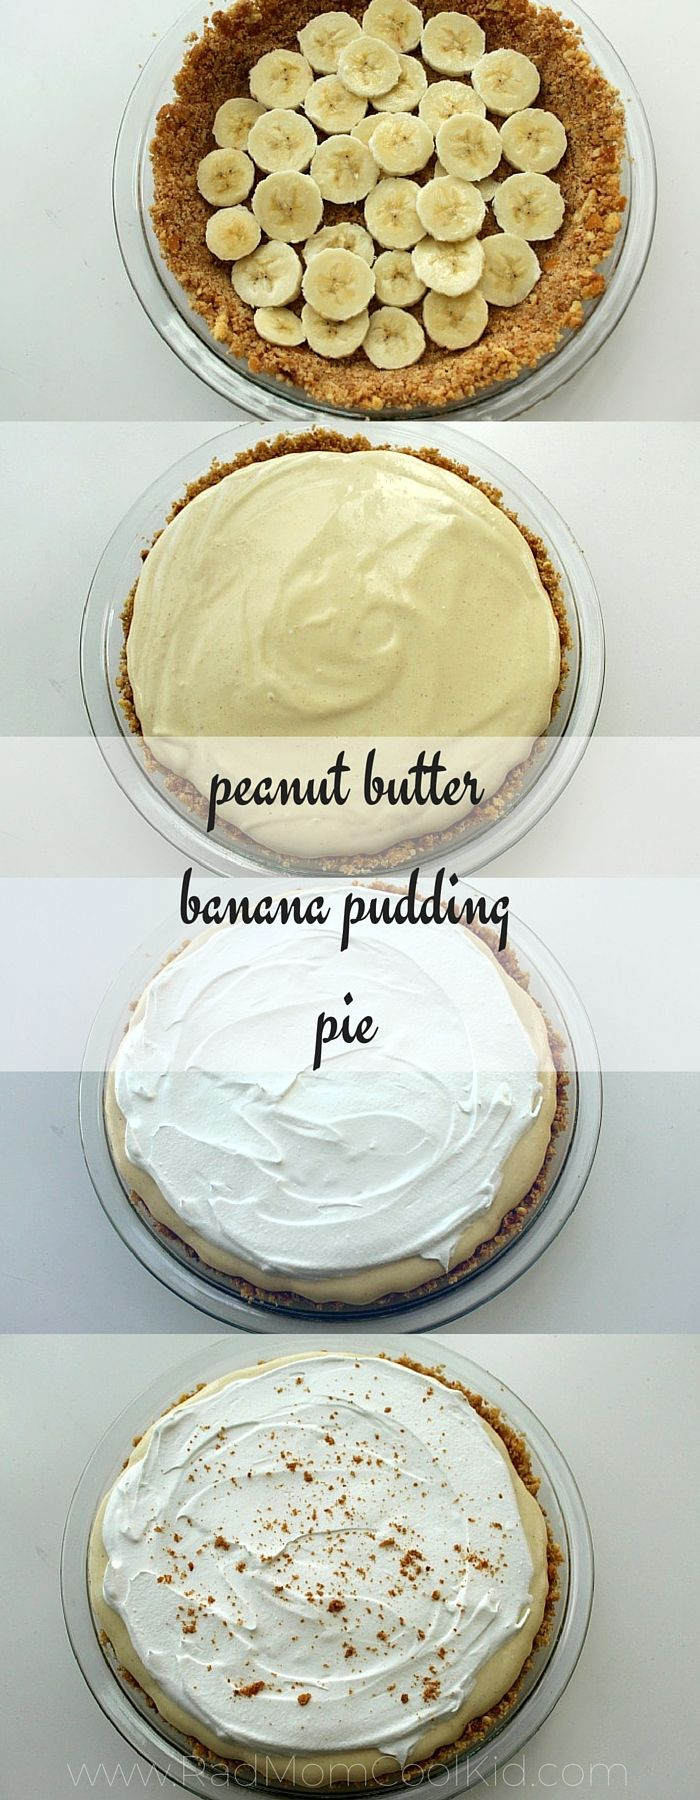 Easy banana pudding pie recipes